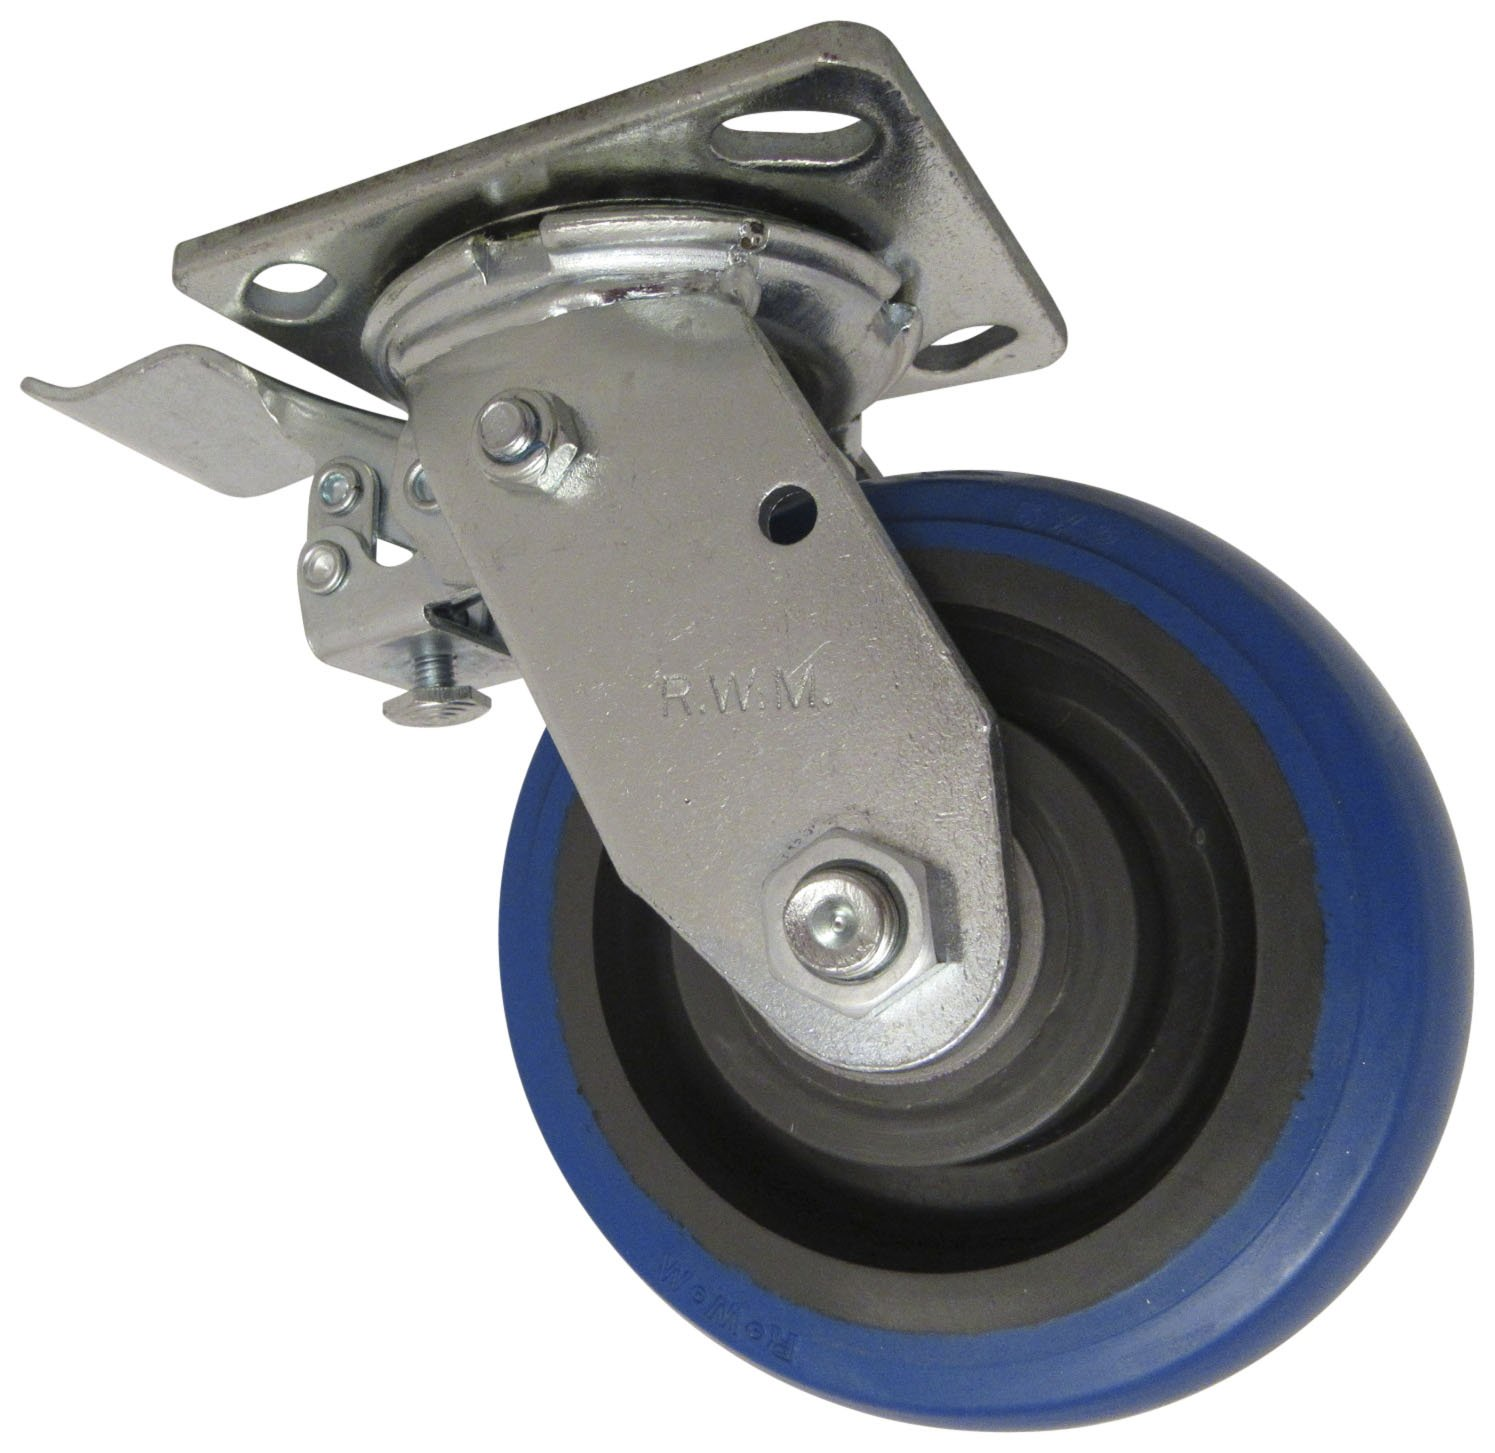 Swivel Caster RWM Casters 46-SWR-0520-S-FCSTLB 46 Series 6-1//2 High Total Lock Brake 5 Signature Wheel with Face Contact Steel